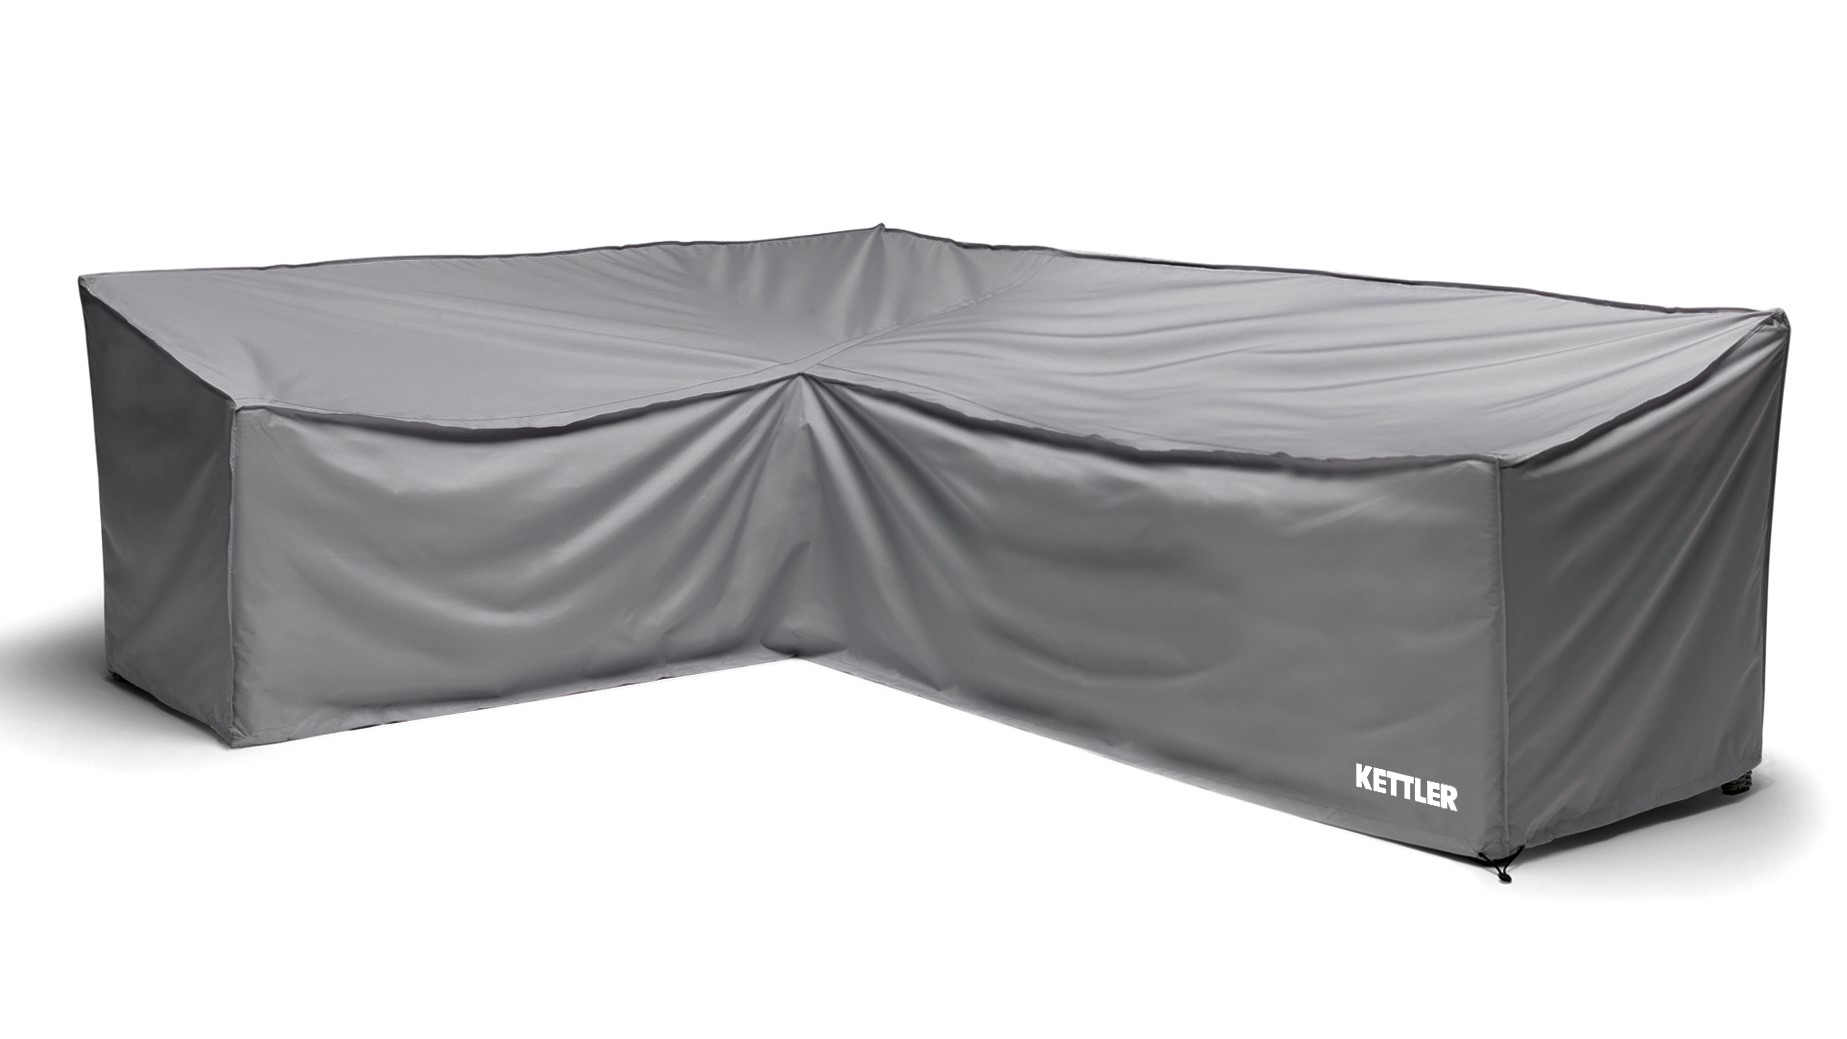 Kettler Palma Right Hand Corner Sofa Cover